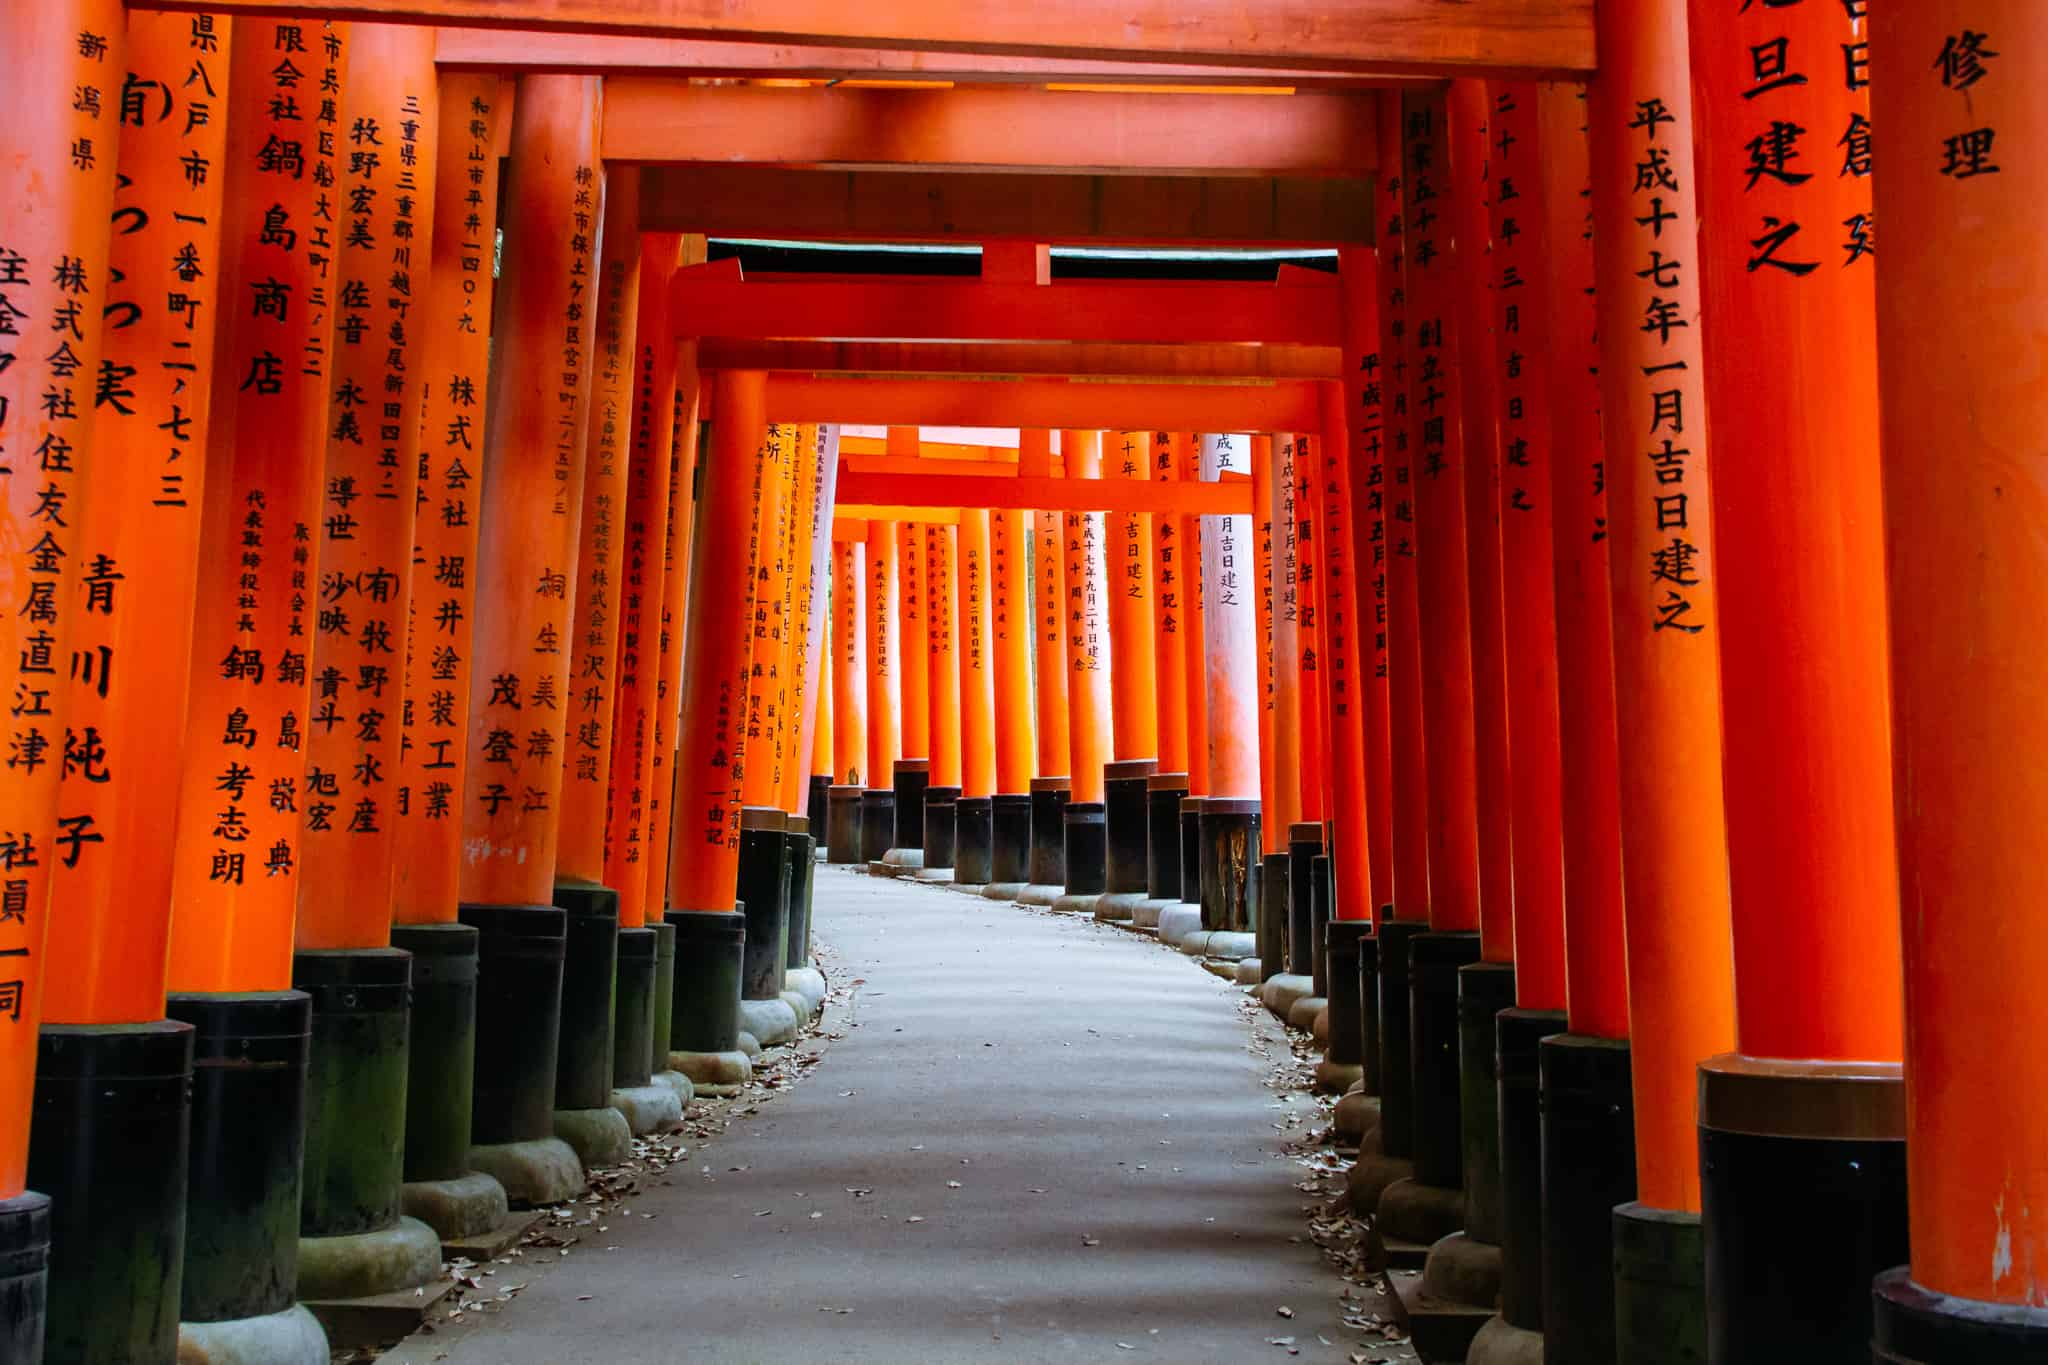 The Kyoto Guide